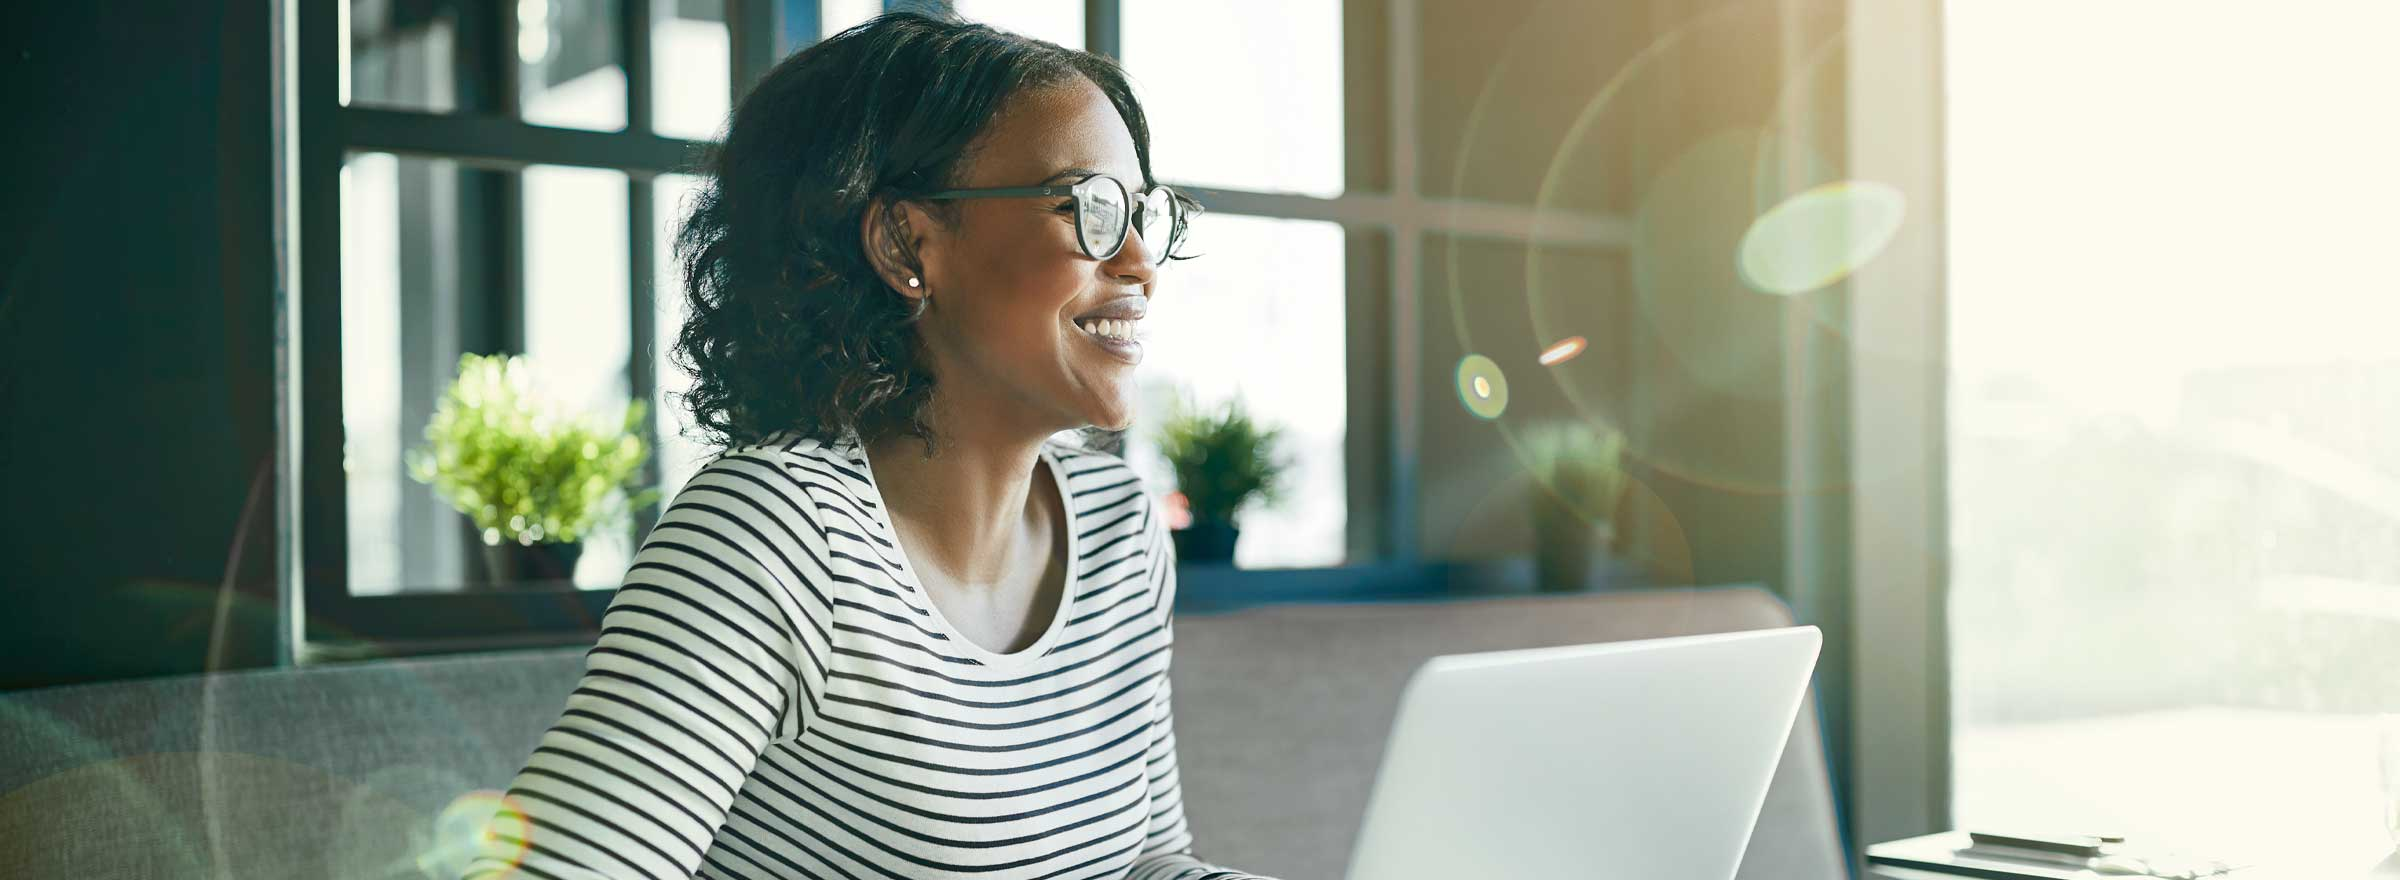 woman sitting at a computer and smiling